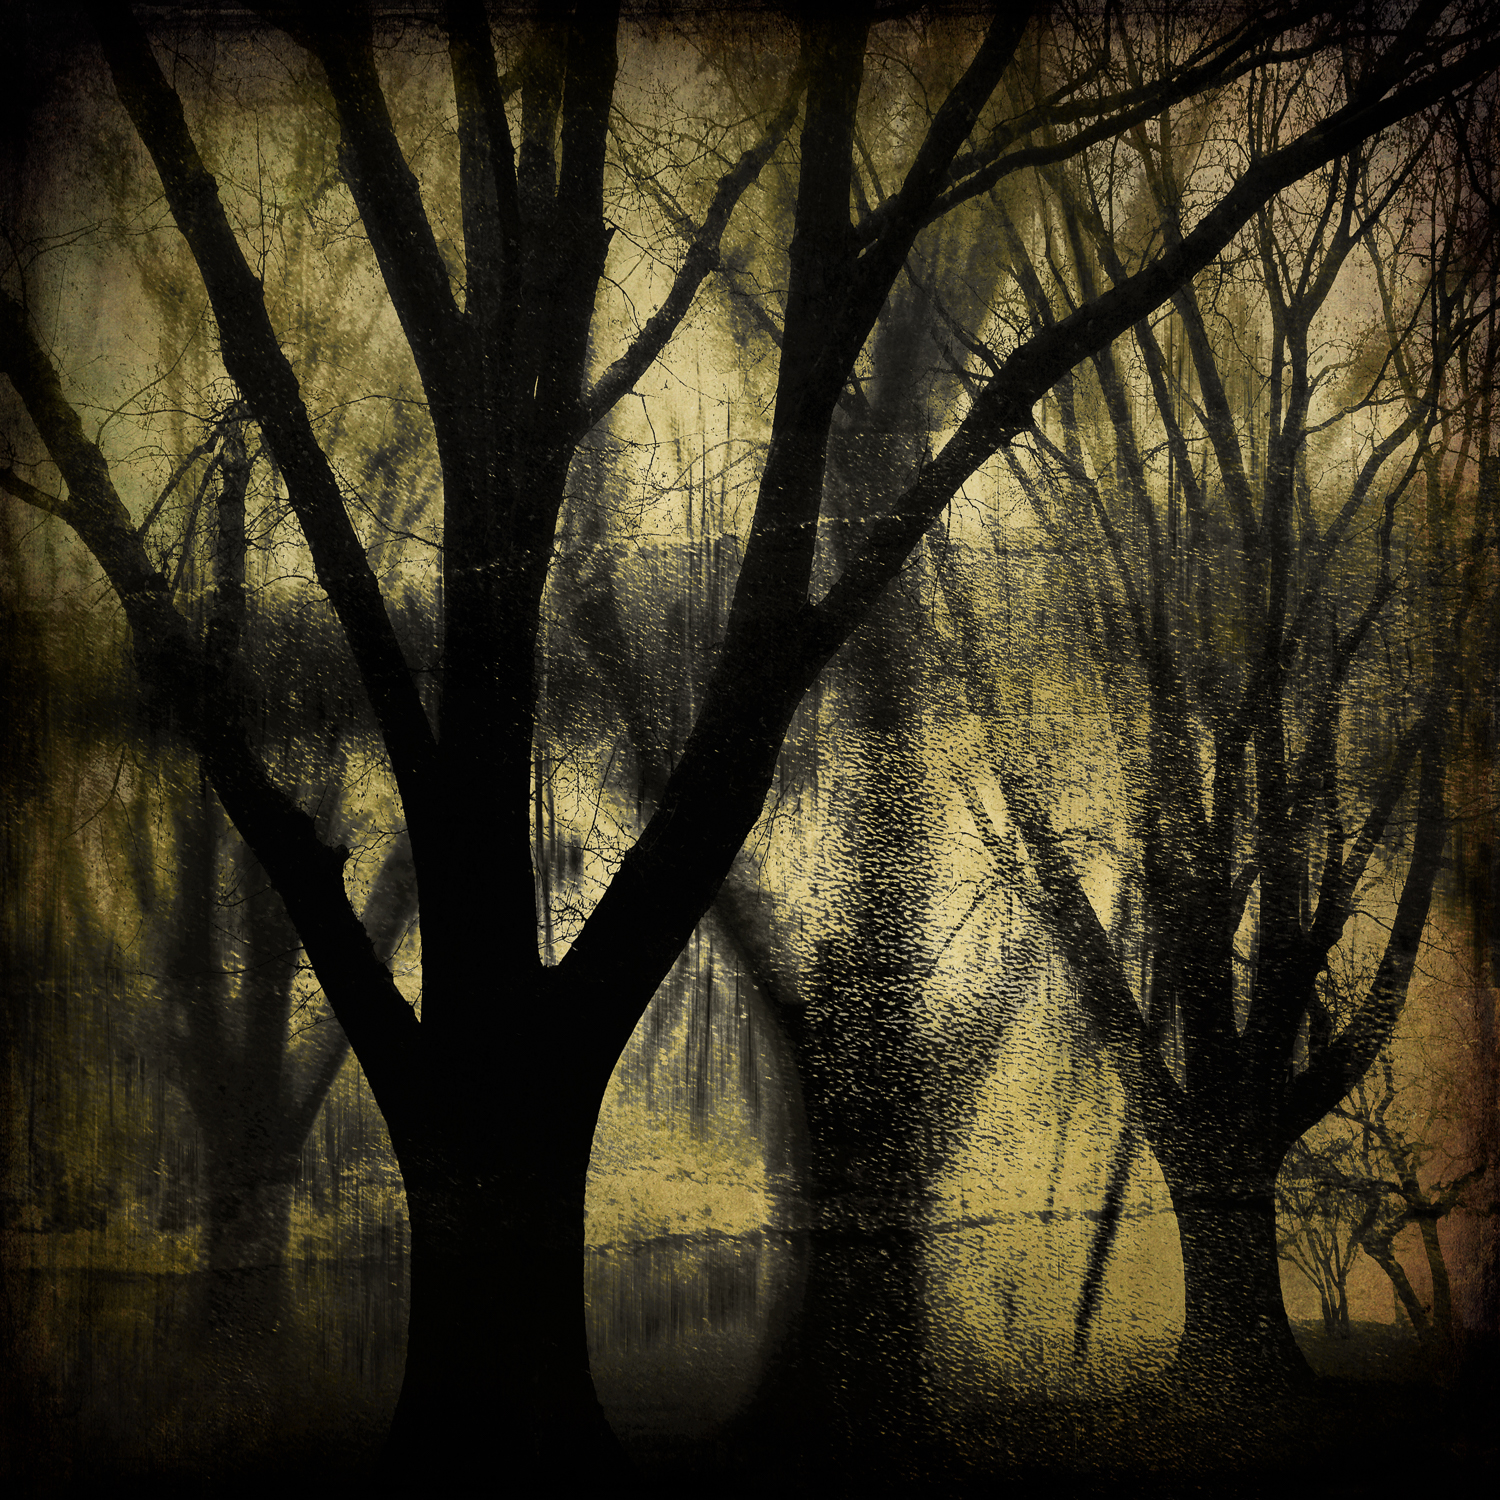 Darkness in the Woods